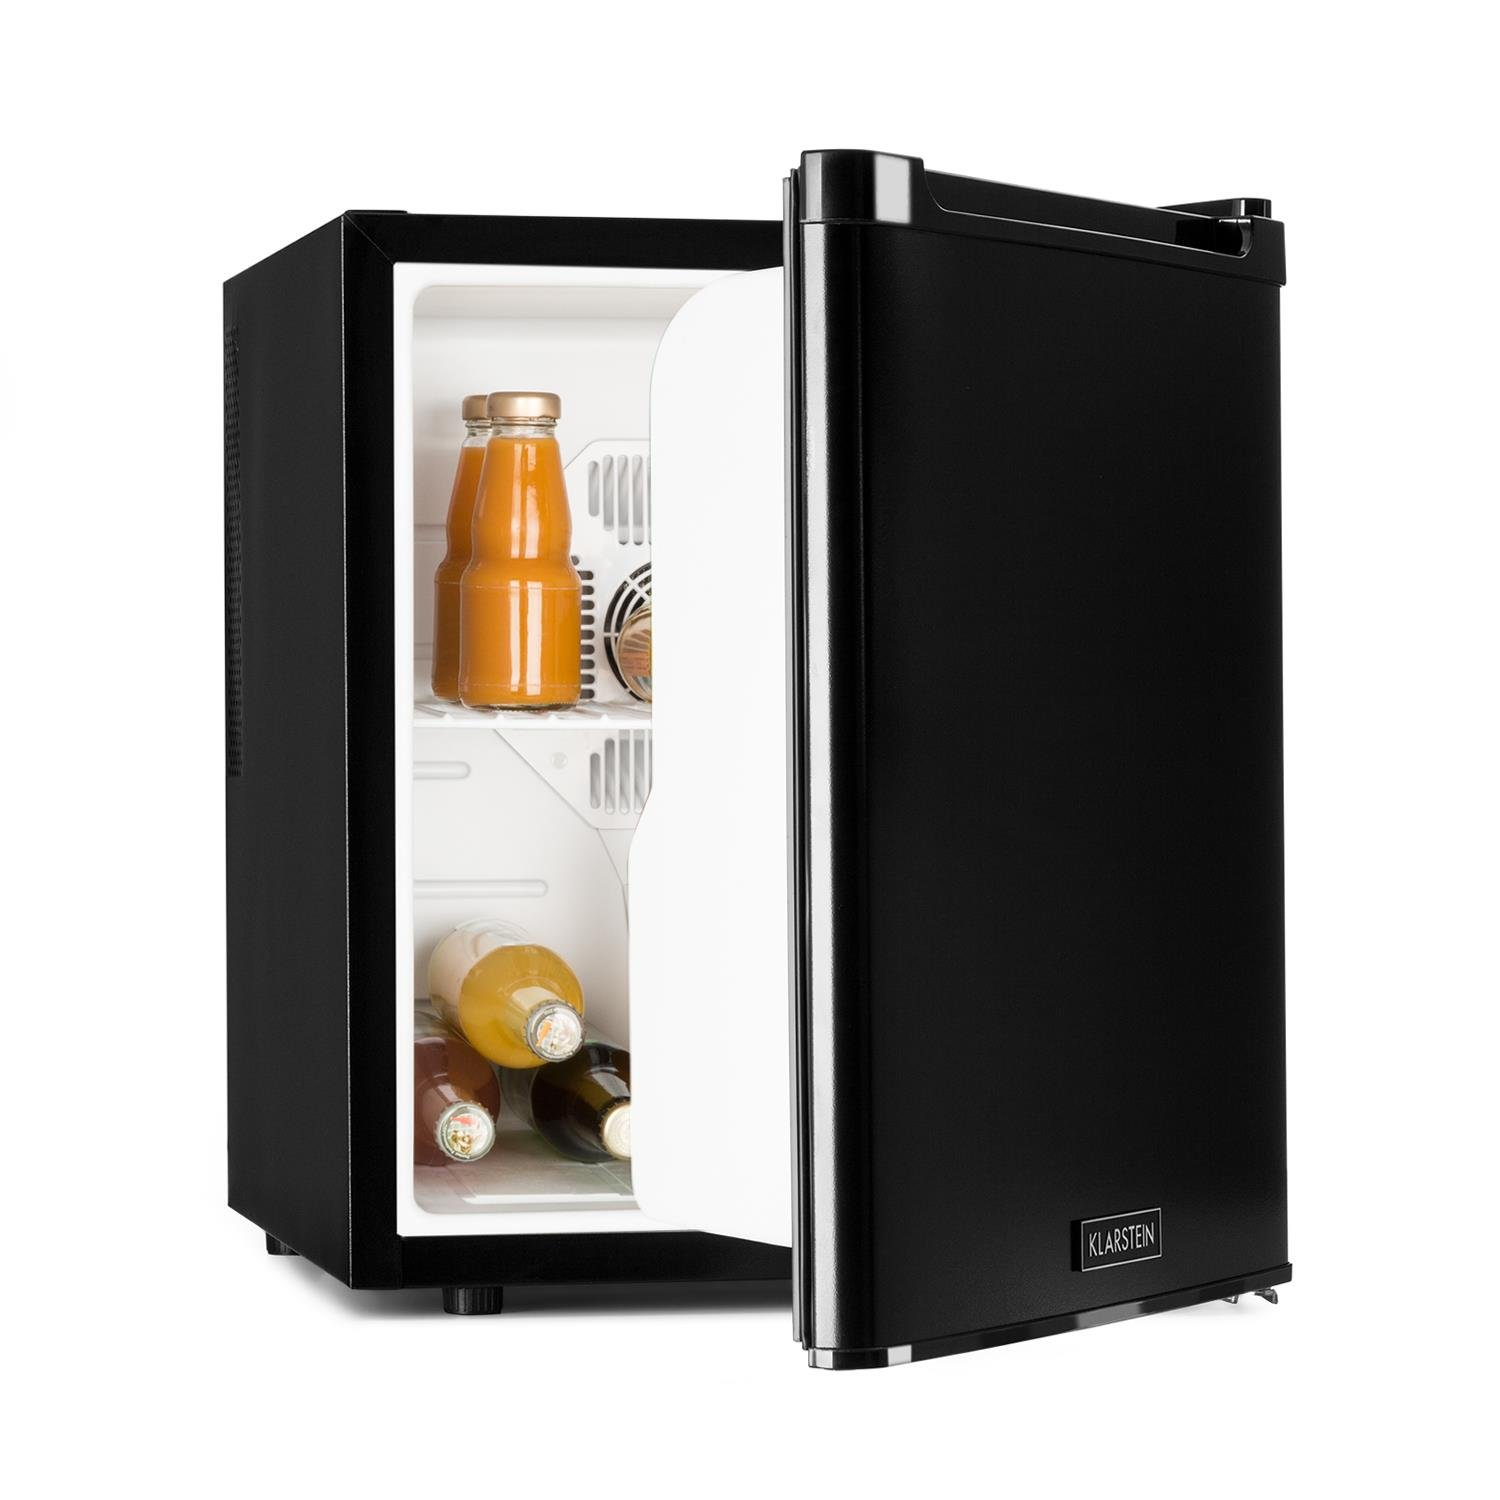 Klarstein CoolTour Beverage Refrigerator Drinks Cooler 48 Litres 70W 5-12 ° C 35dB Possibility of Operation in the Car White Interior Light Door Open Direction Chargeable Practical Black